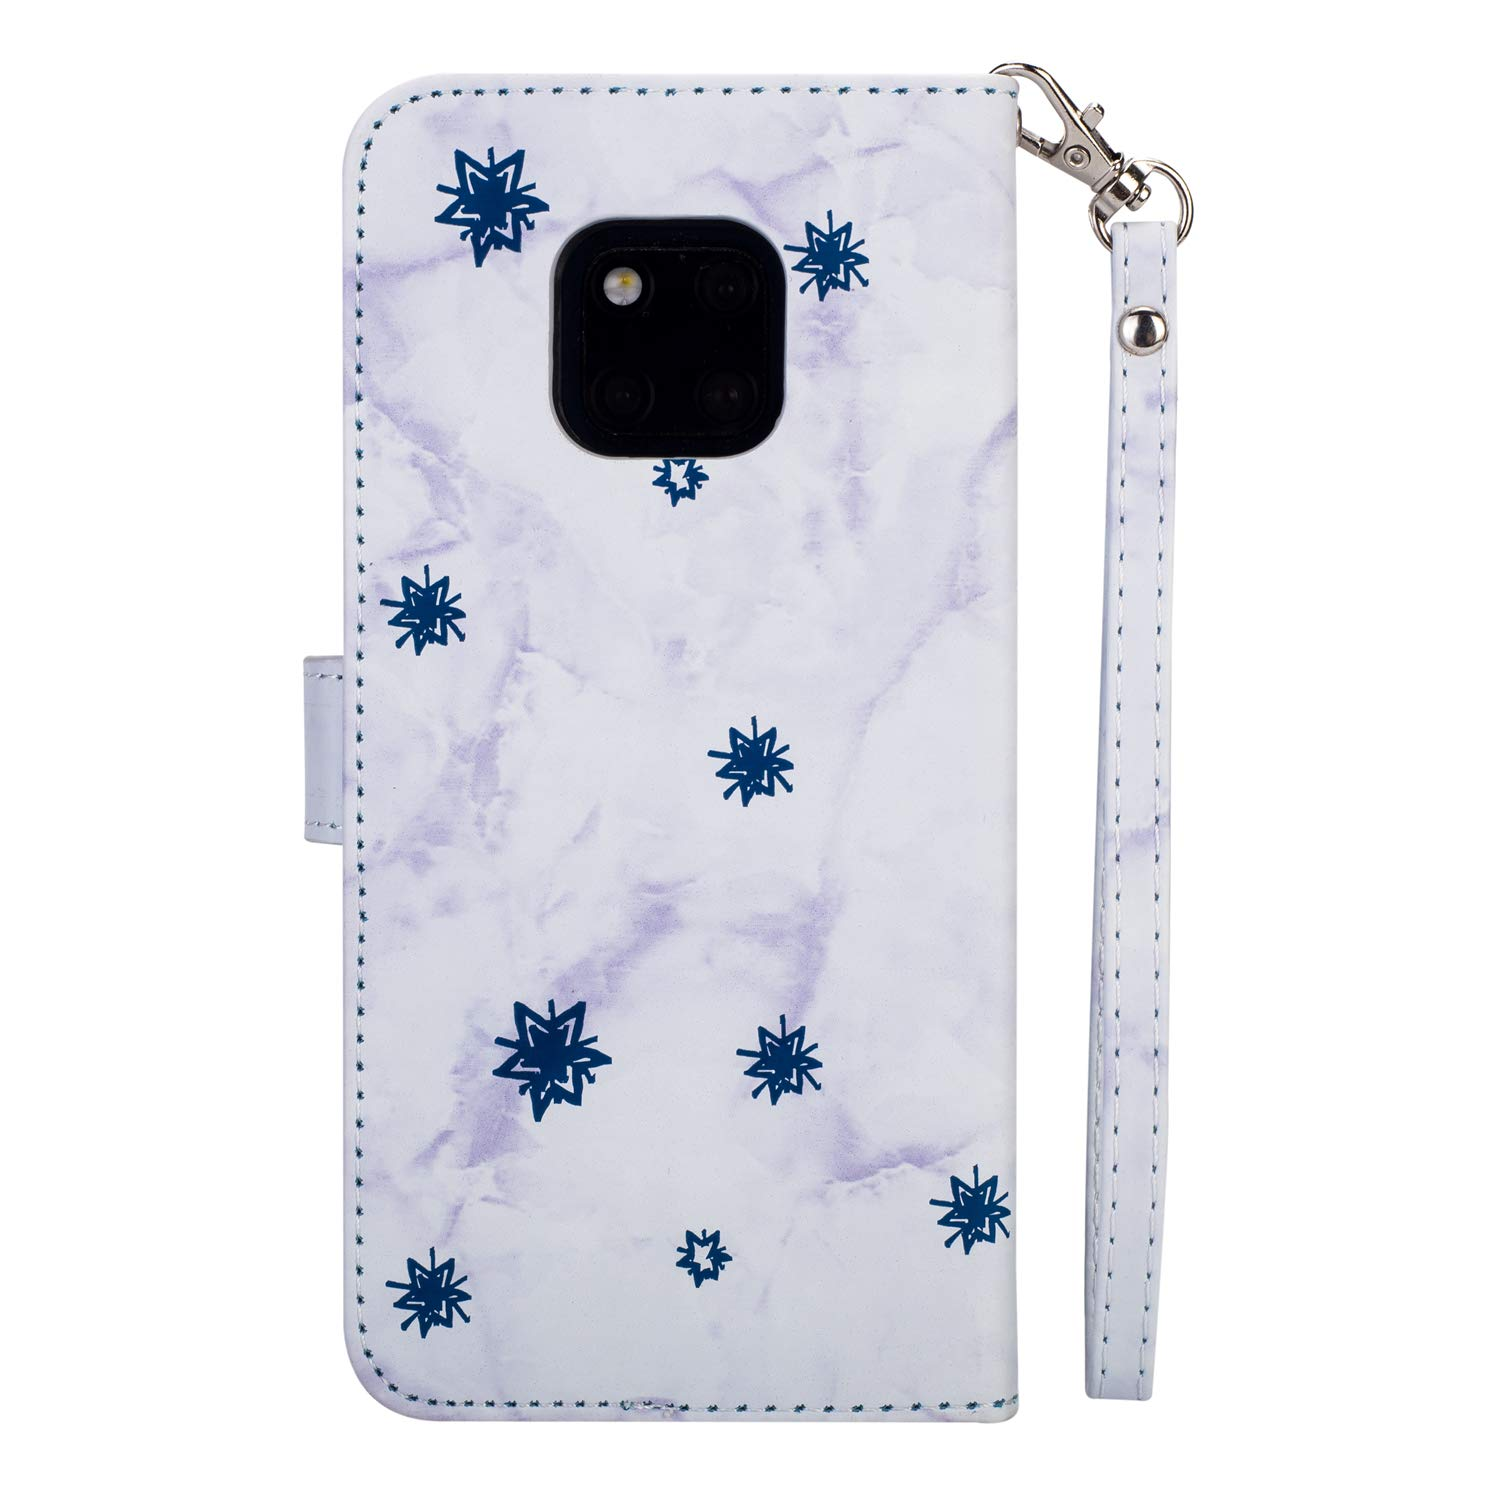 Marble Moon Embossing Imprinted Flip Wallet Premium PU Leather Case for Huawei Mate 20,SKYXD Embossed Flower Totem 3D Pattern Magnetic Closure Soft Slim Cover with Wrist Strap Black